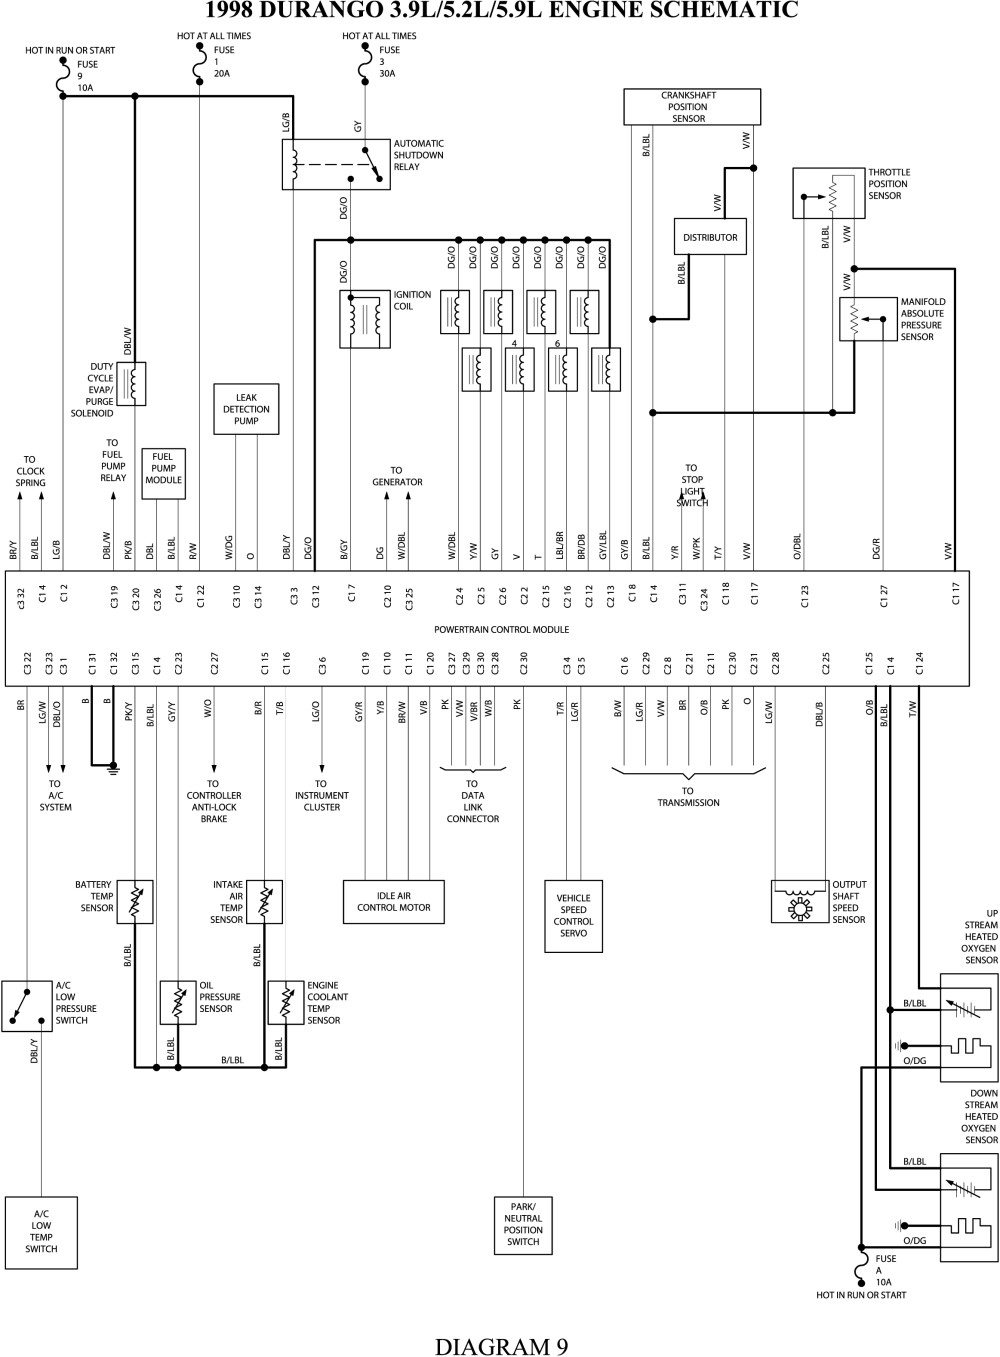 2000 Dodge Durango Radio Wiring Diagram